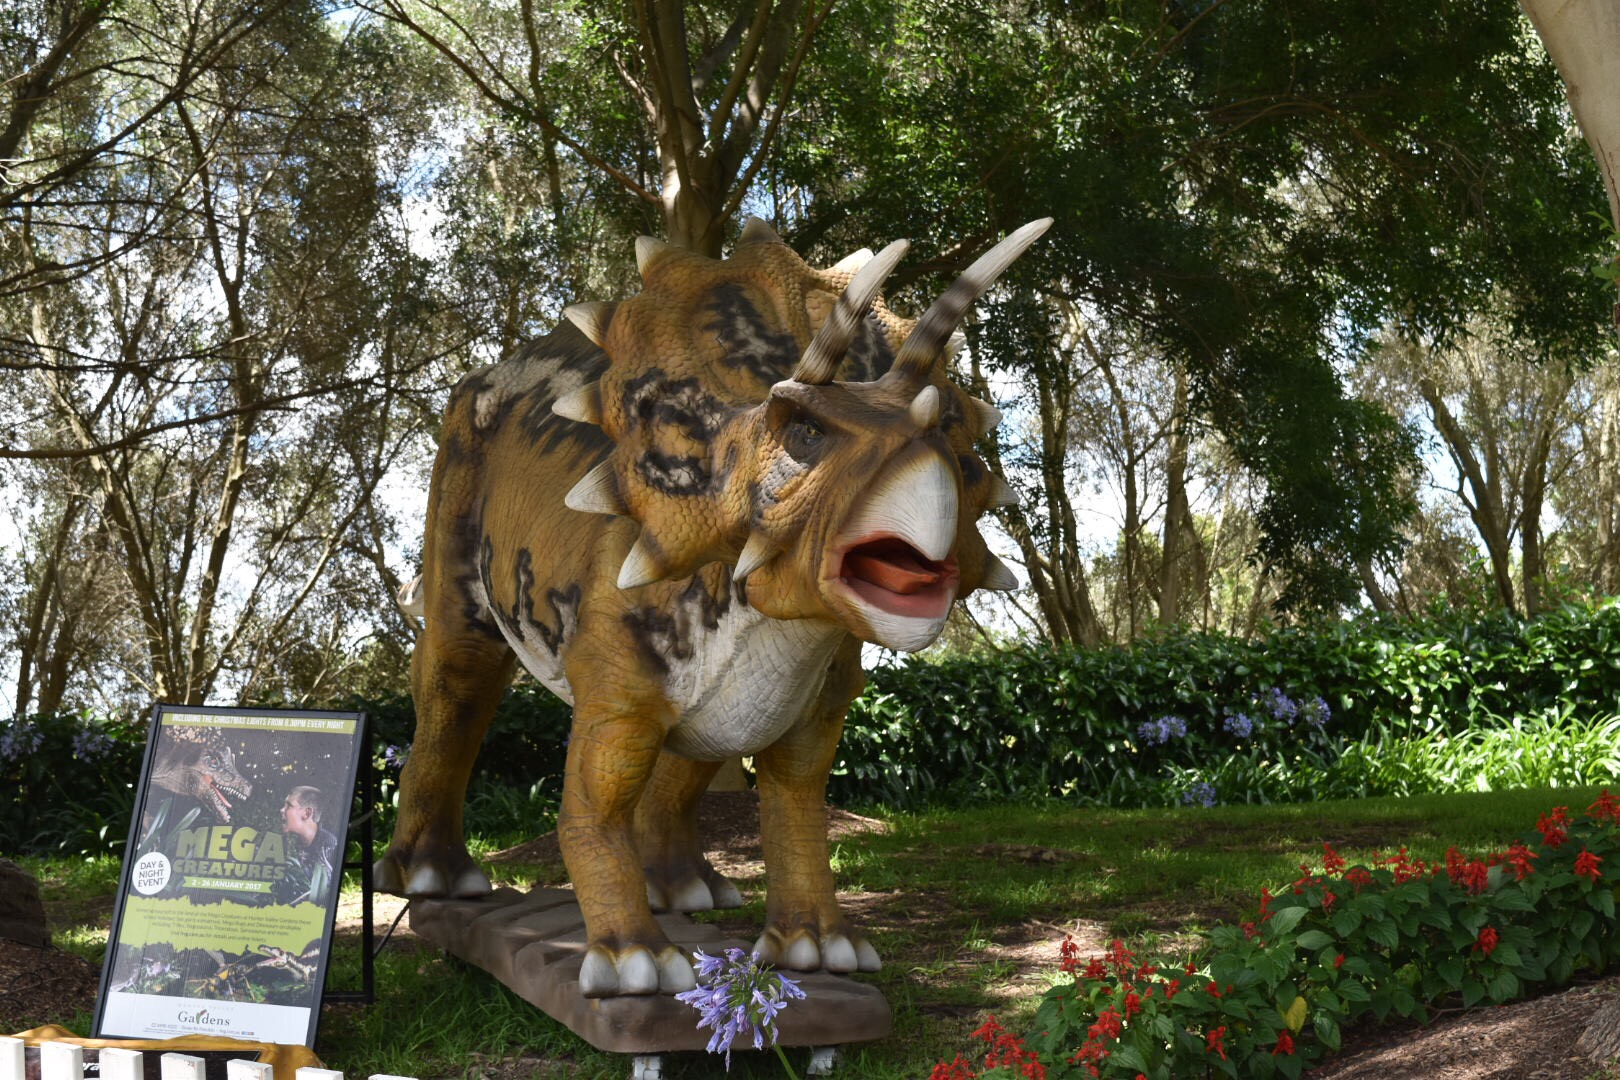 Review of Mega Creatures Event at Hunter Valley Gardens